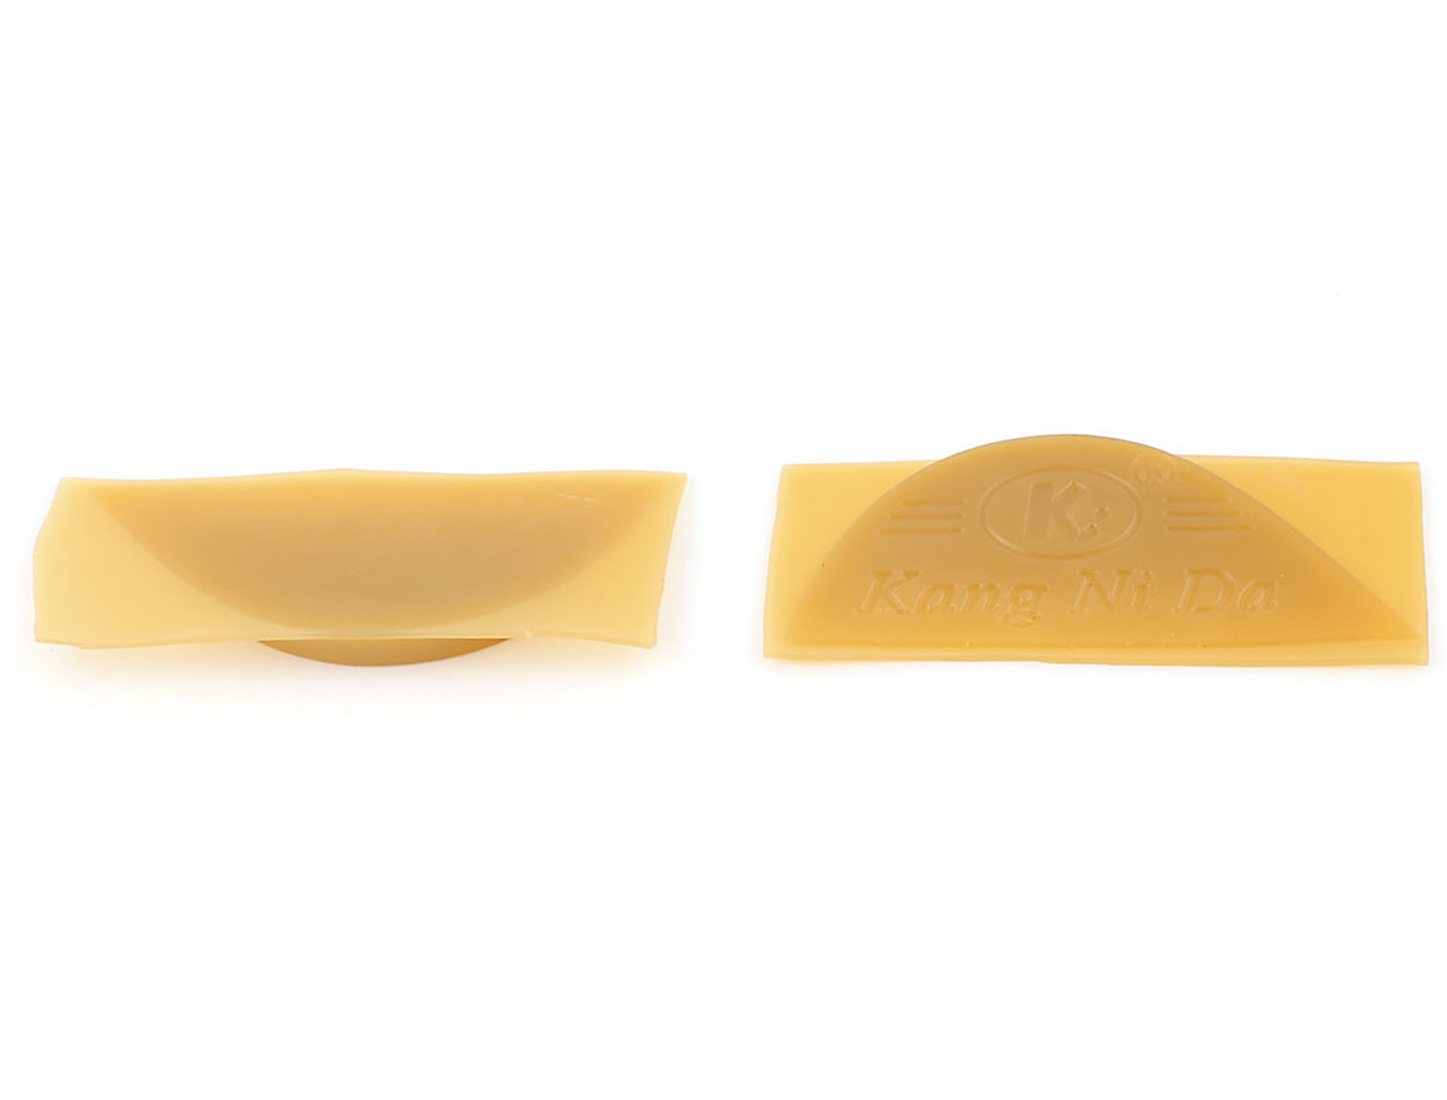 Pair Antislip Rubber Shoes Boots Sole Heel Plate Taps Tips Repair Pads Yellow